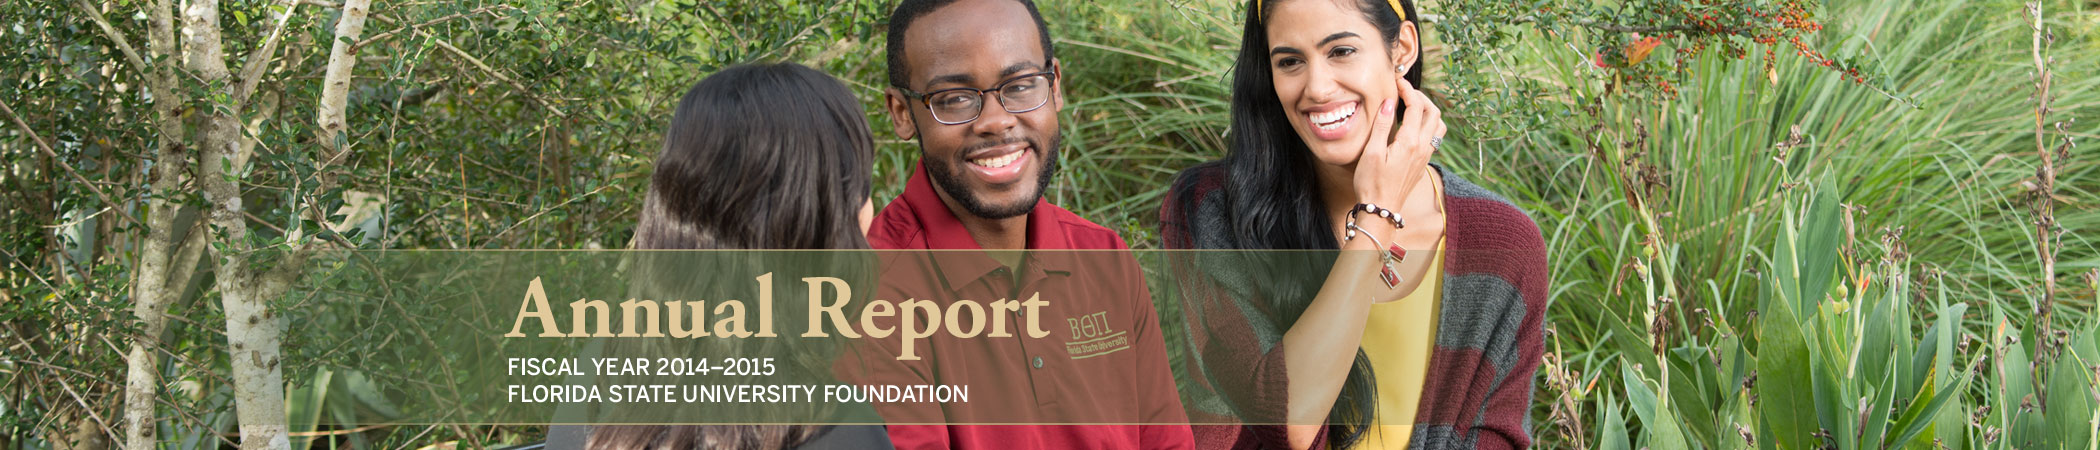 FSU Foundation Annual Report Fiscal Year 2014-2015